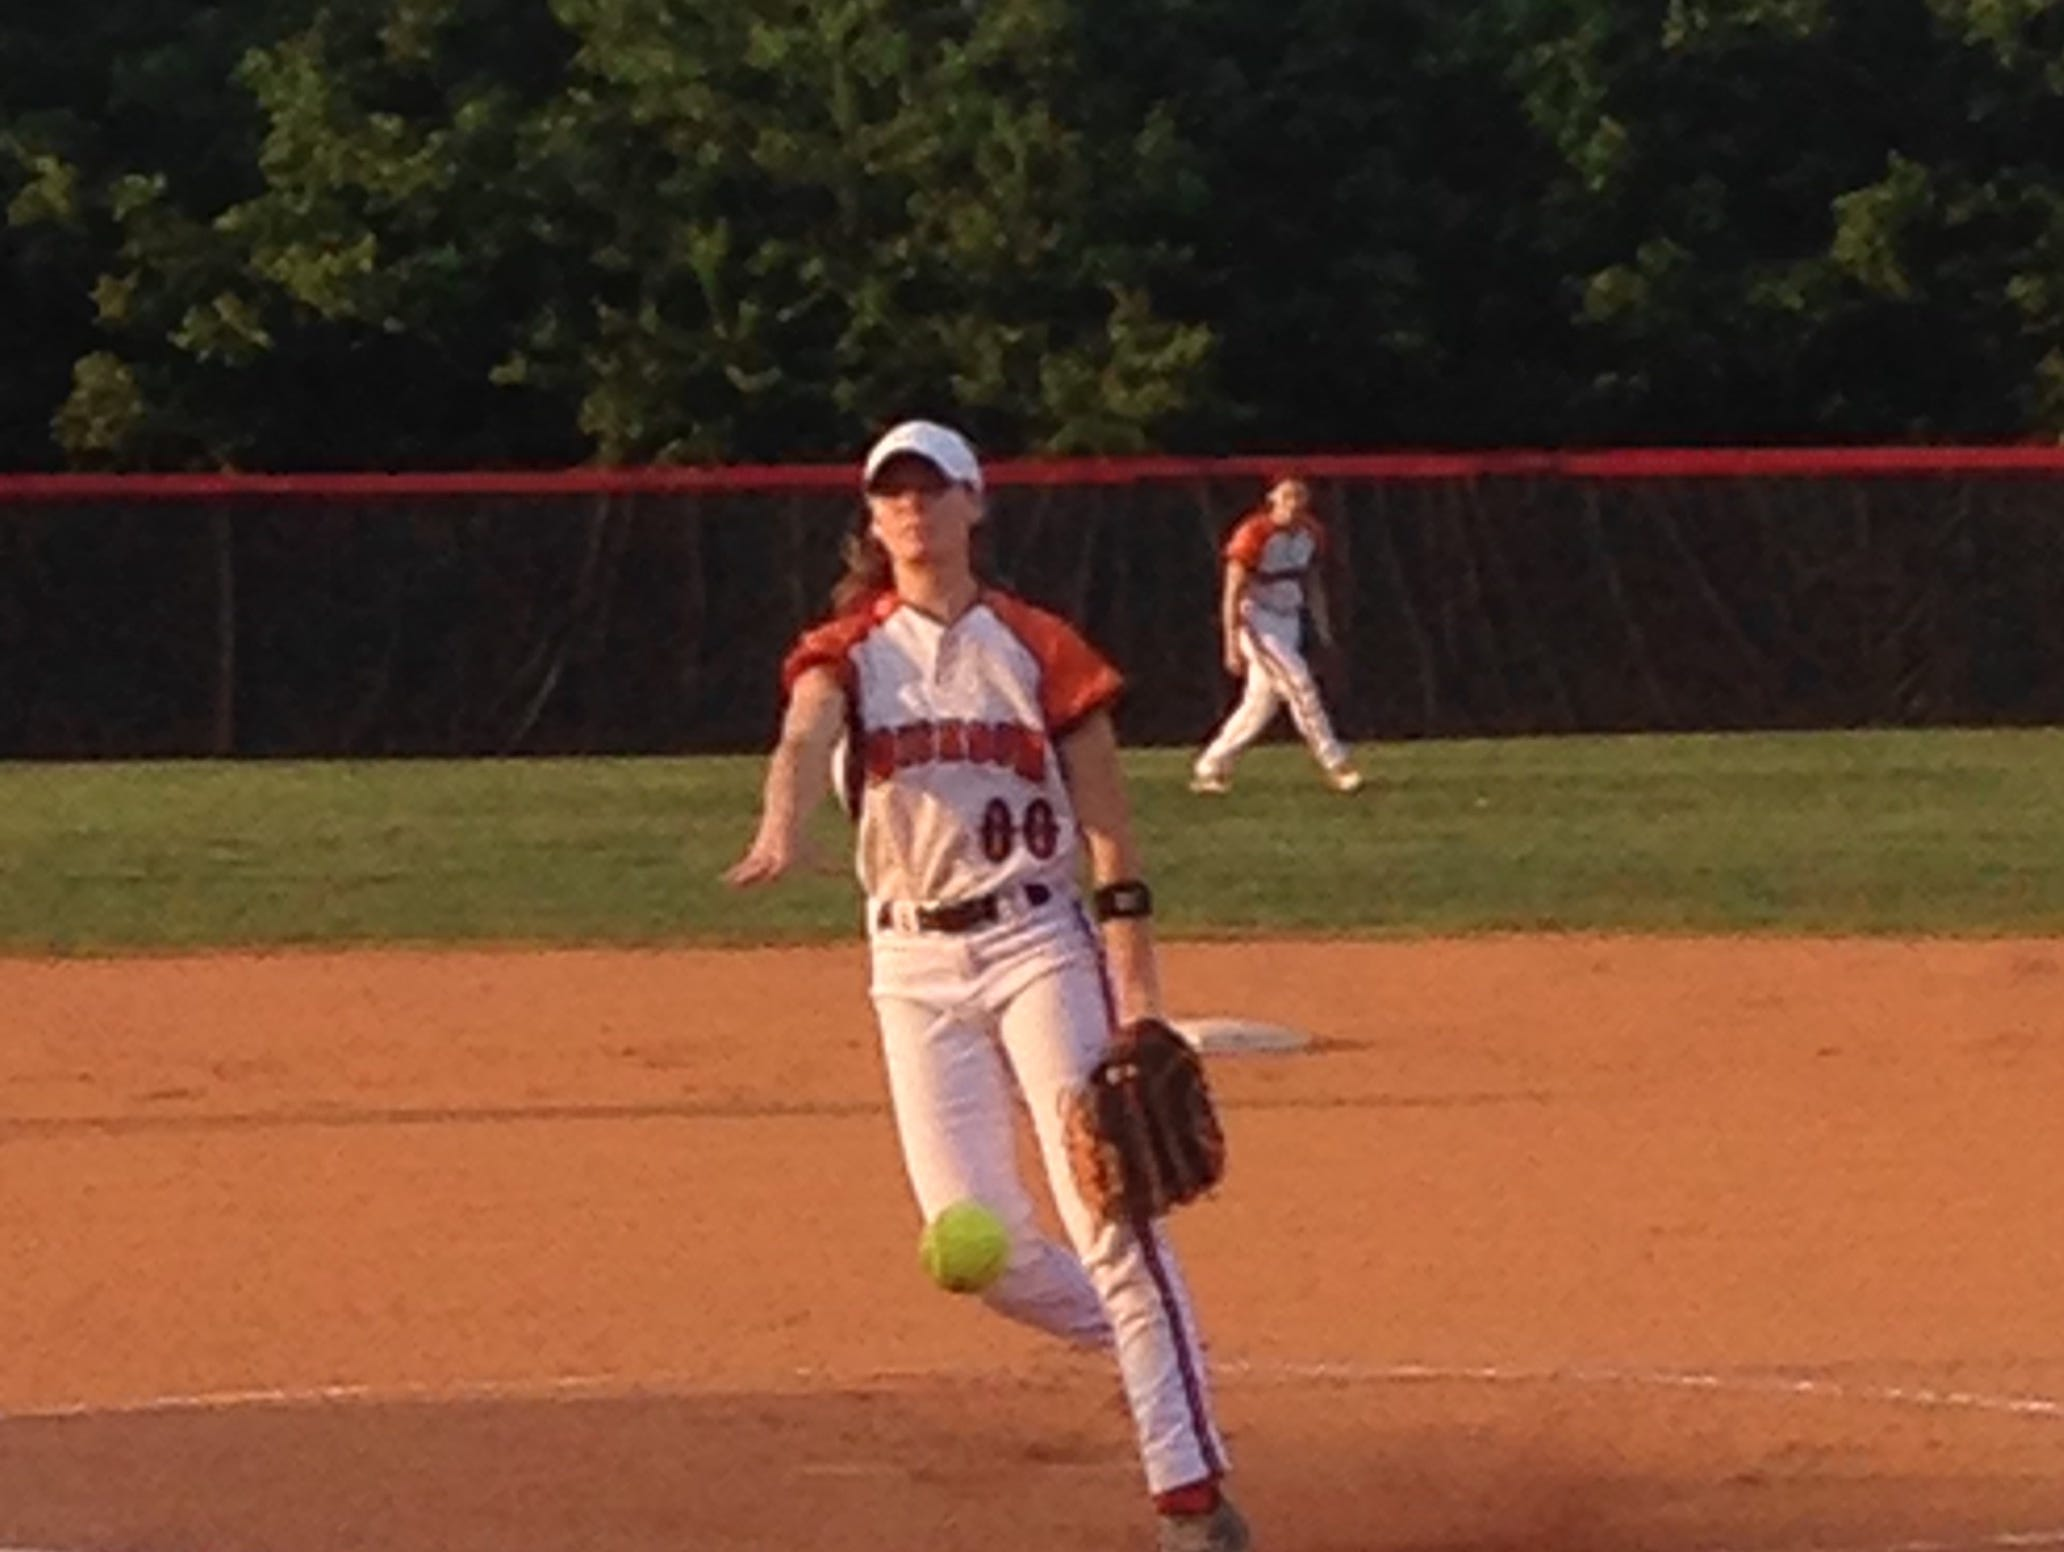 Dickson County's Brooklin Lee struck out 13 in Tuesday's win.